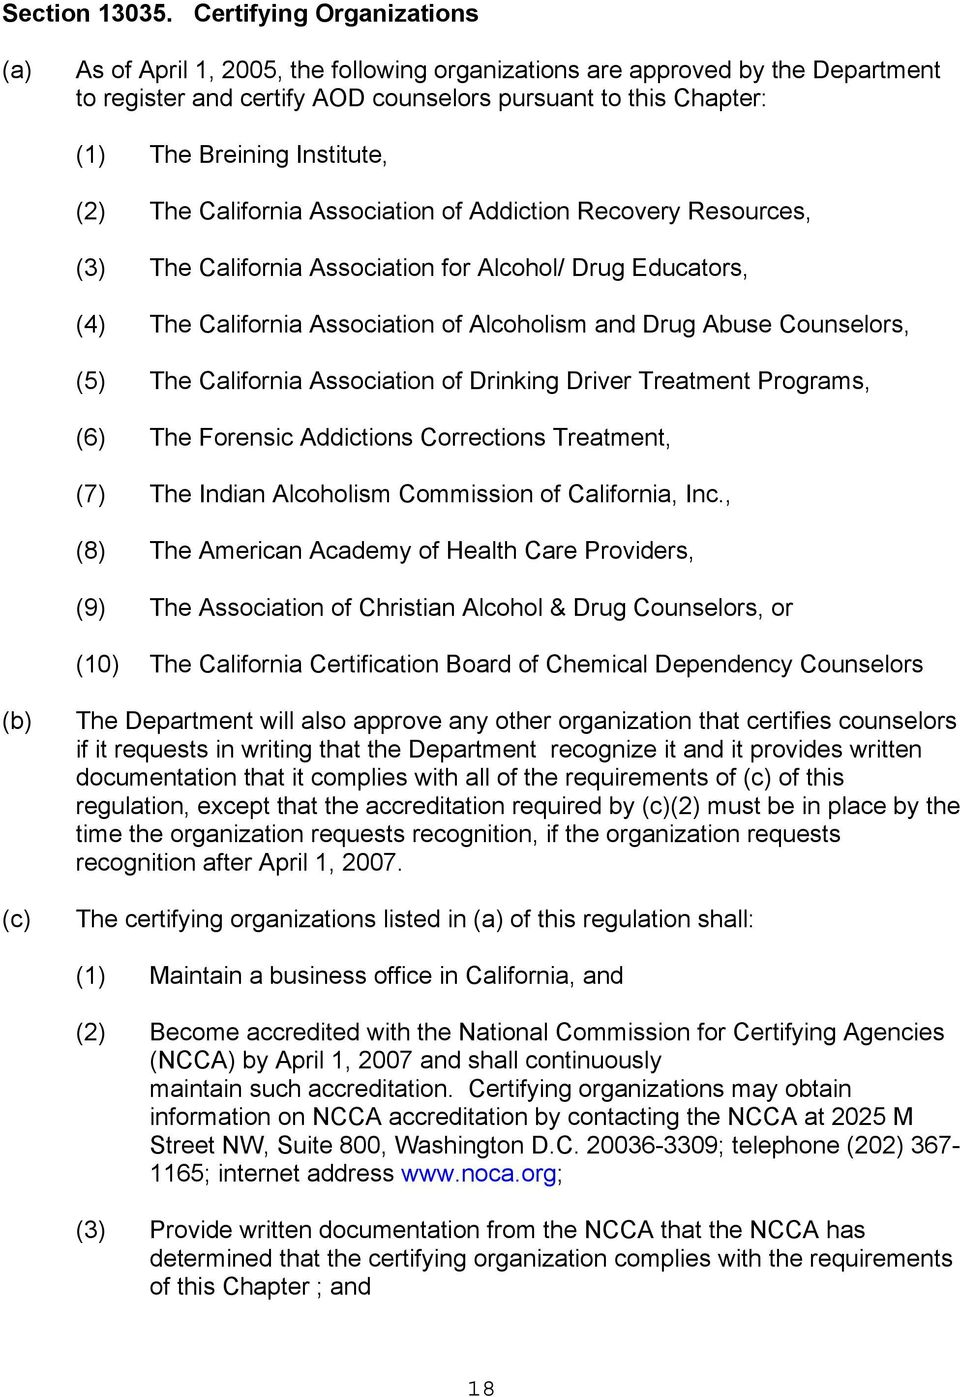 Institute, (2) The California Association of Addiction Recovery Resources, (3) The California Association for Alcohol/ Drug Educators, (4) The California Association of Alcoholism and Drug Abuse